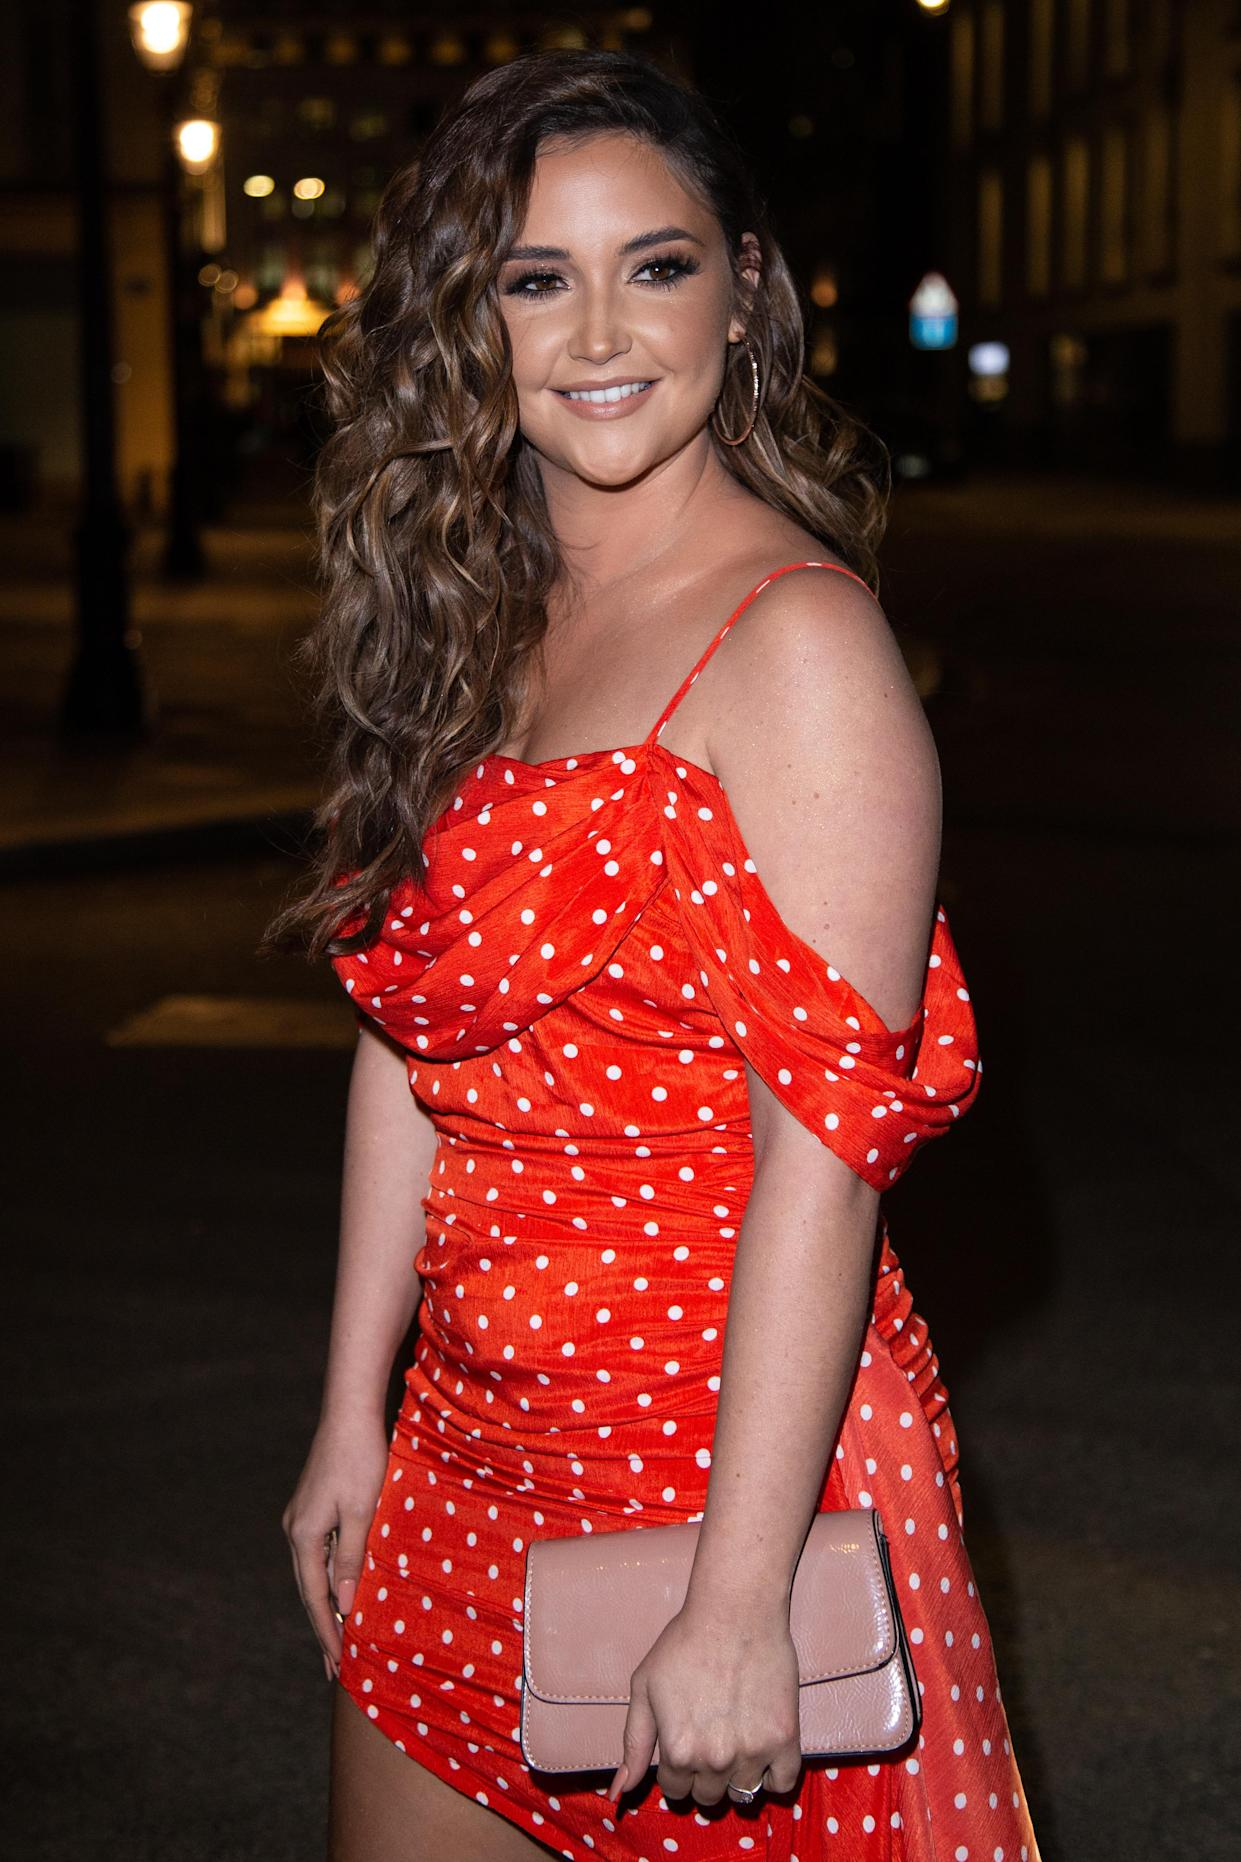 Jacqueline Jossa defended her holiday to Portugal. (Photo by Robin Pope/NurPhoto via Getty Images)